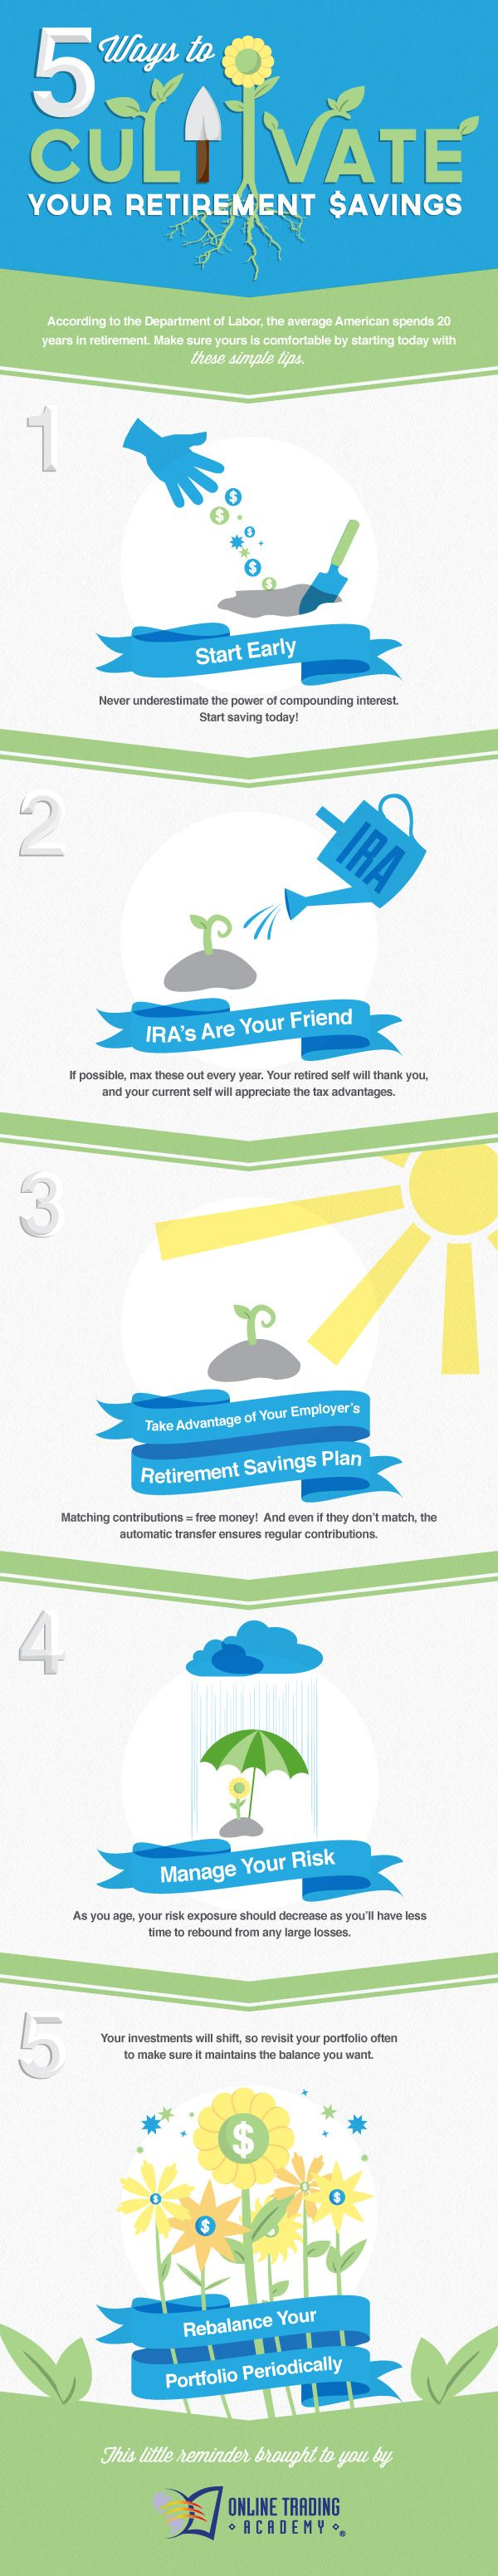 Financial Freedom at Retirement: Plant the seeds of retirement now. Here's why... -Highland Financial Advisors, LLC does not endorse or approve of any form of third party communication, or re-distribution of this graphic or information that we post on Pinterest. Nor do we ourselves endorse this third party or their products/services.